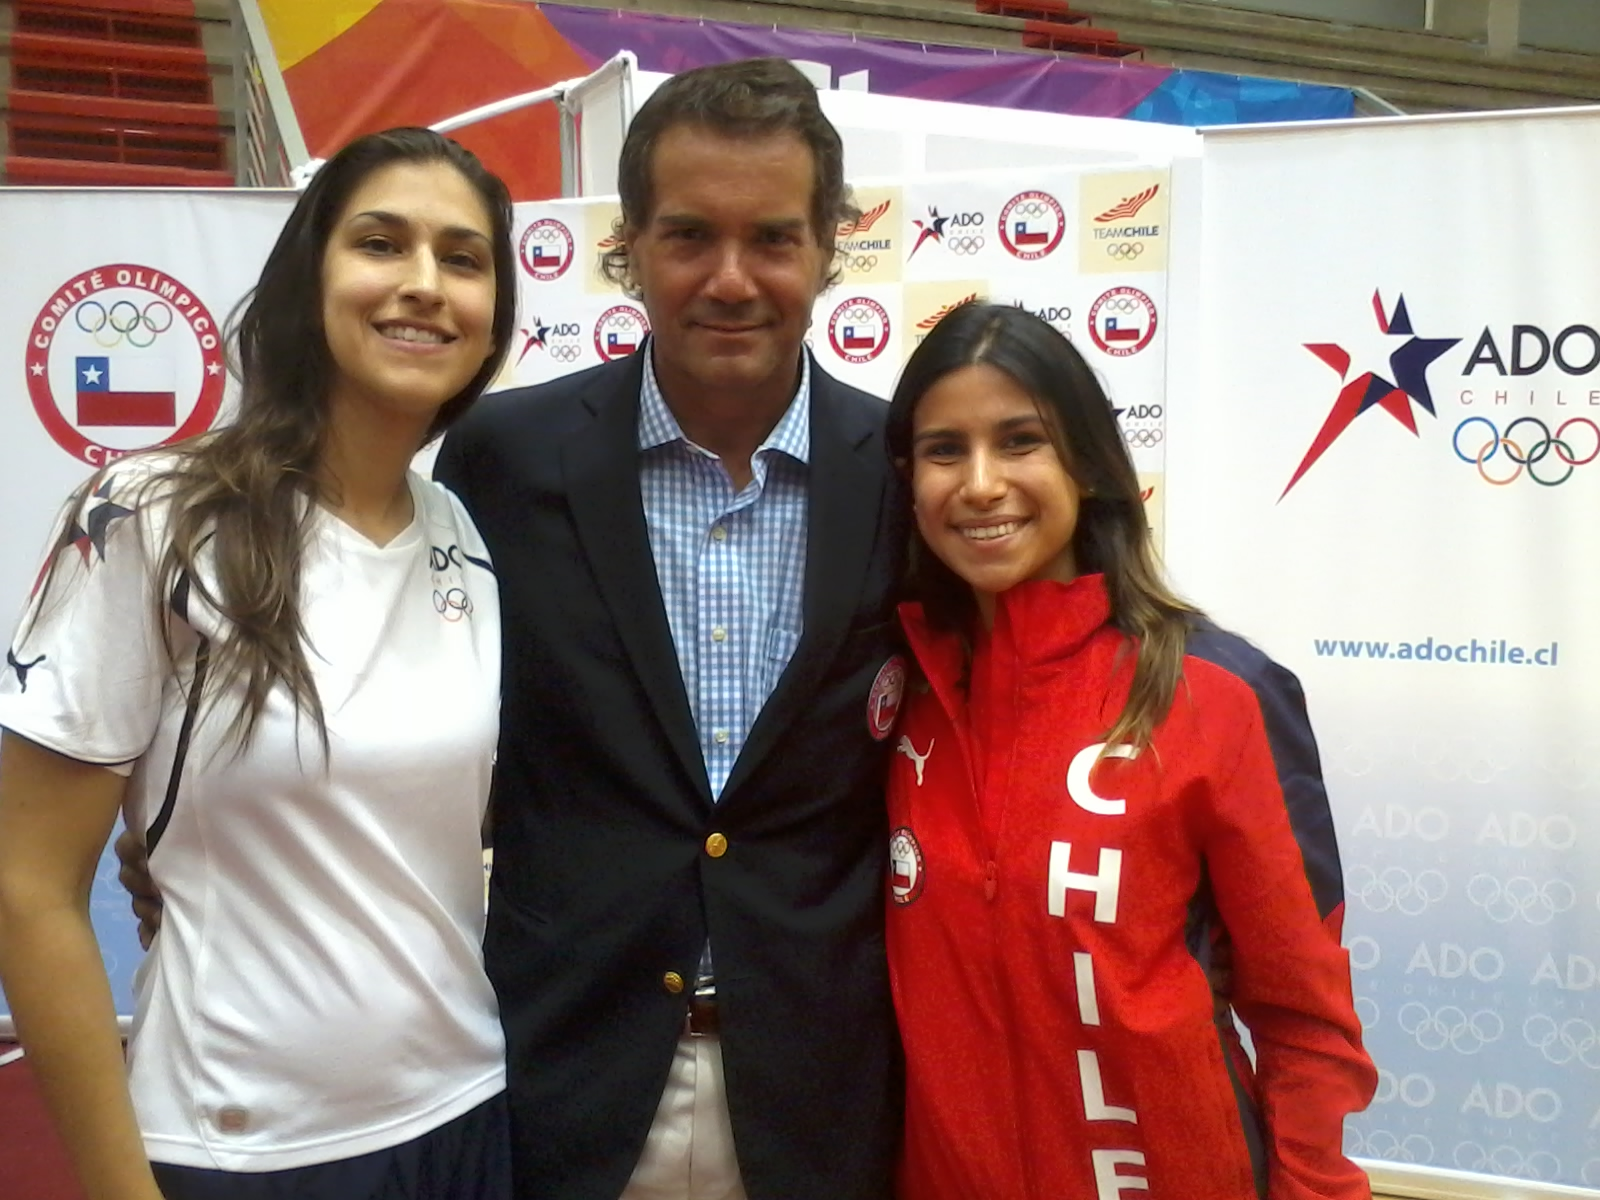 Neven Ilic and Team Chile. Photo: DAR Chile